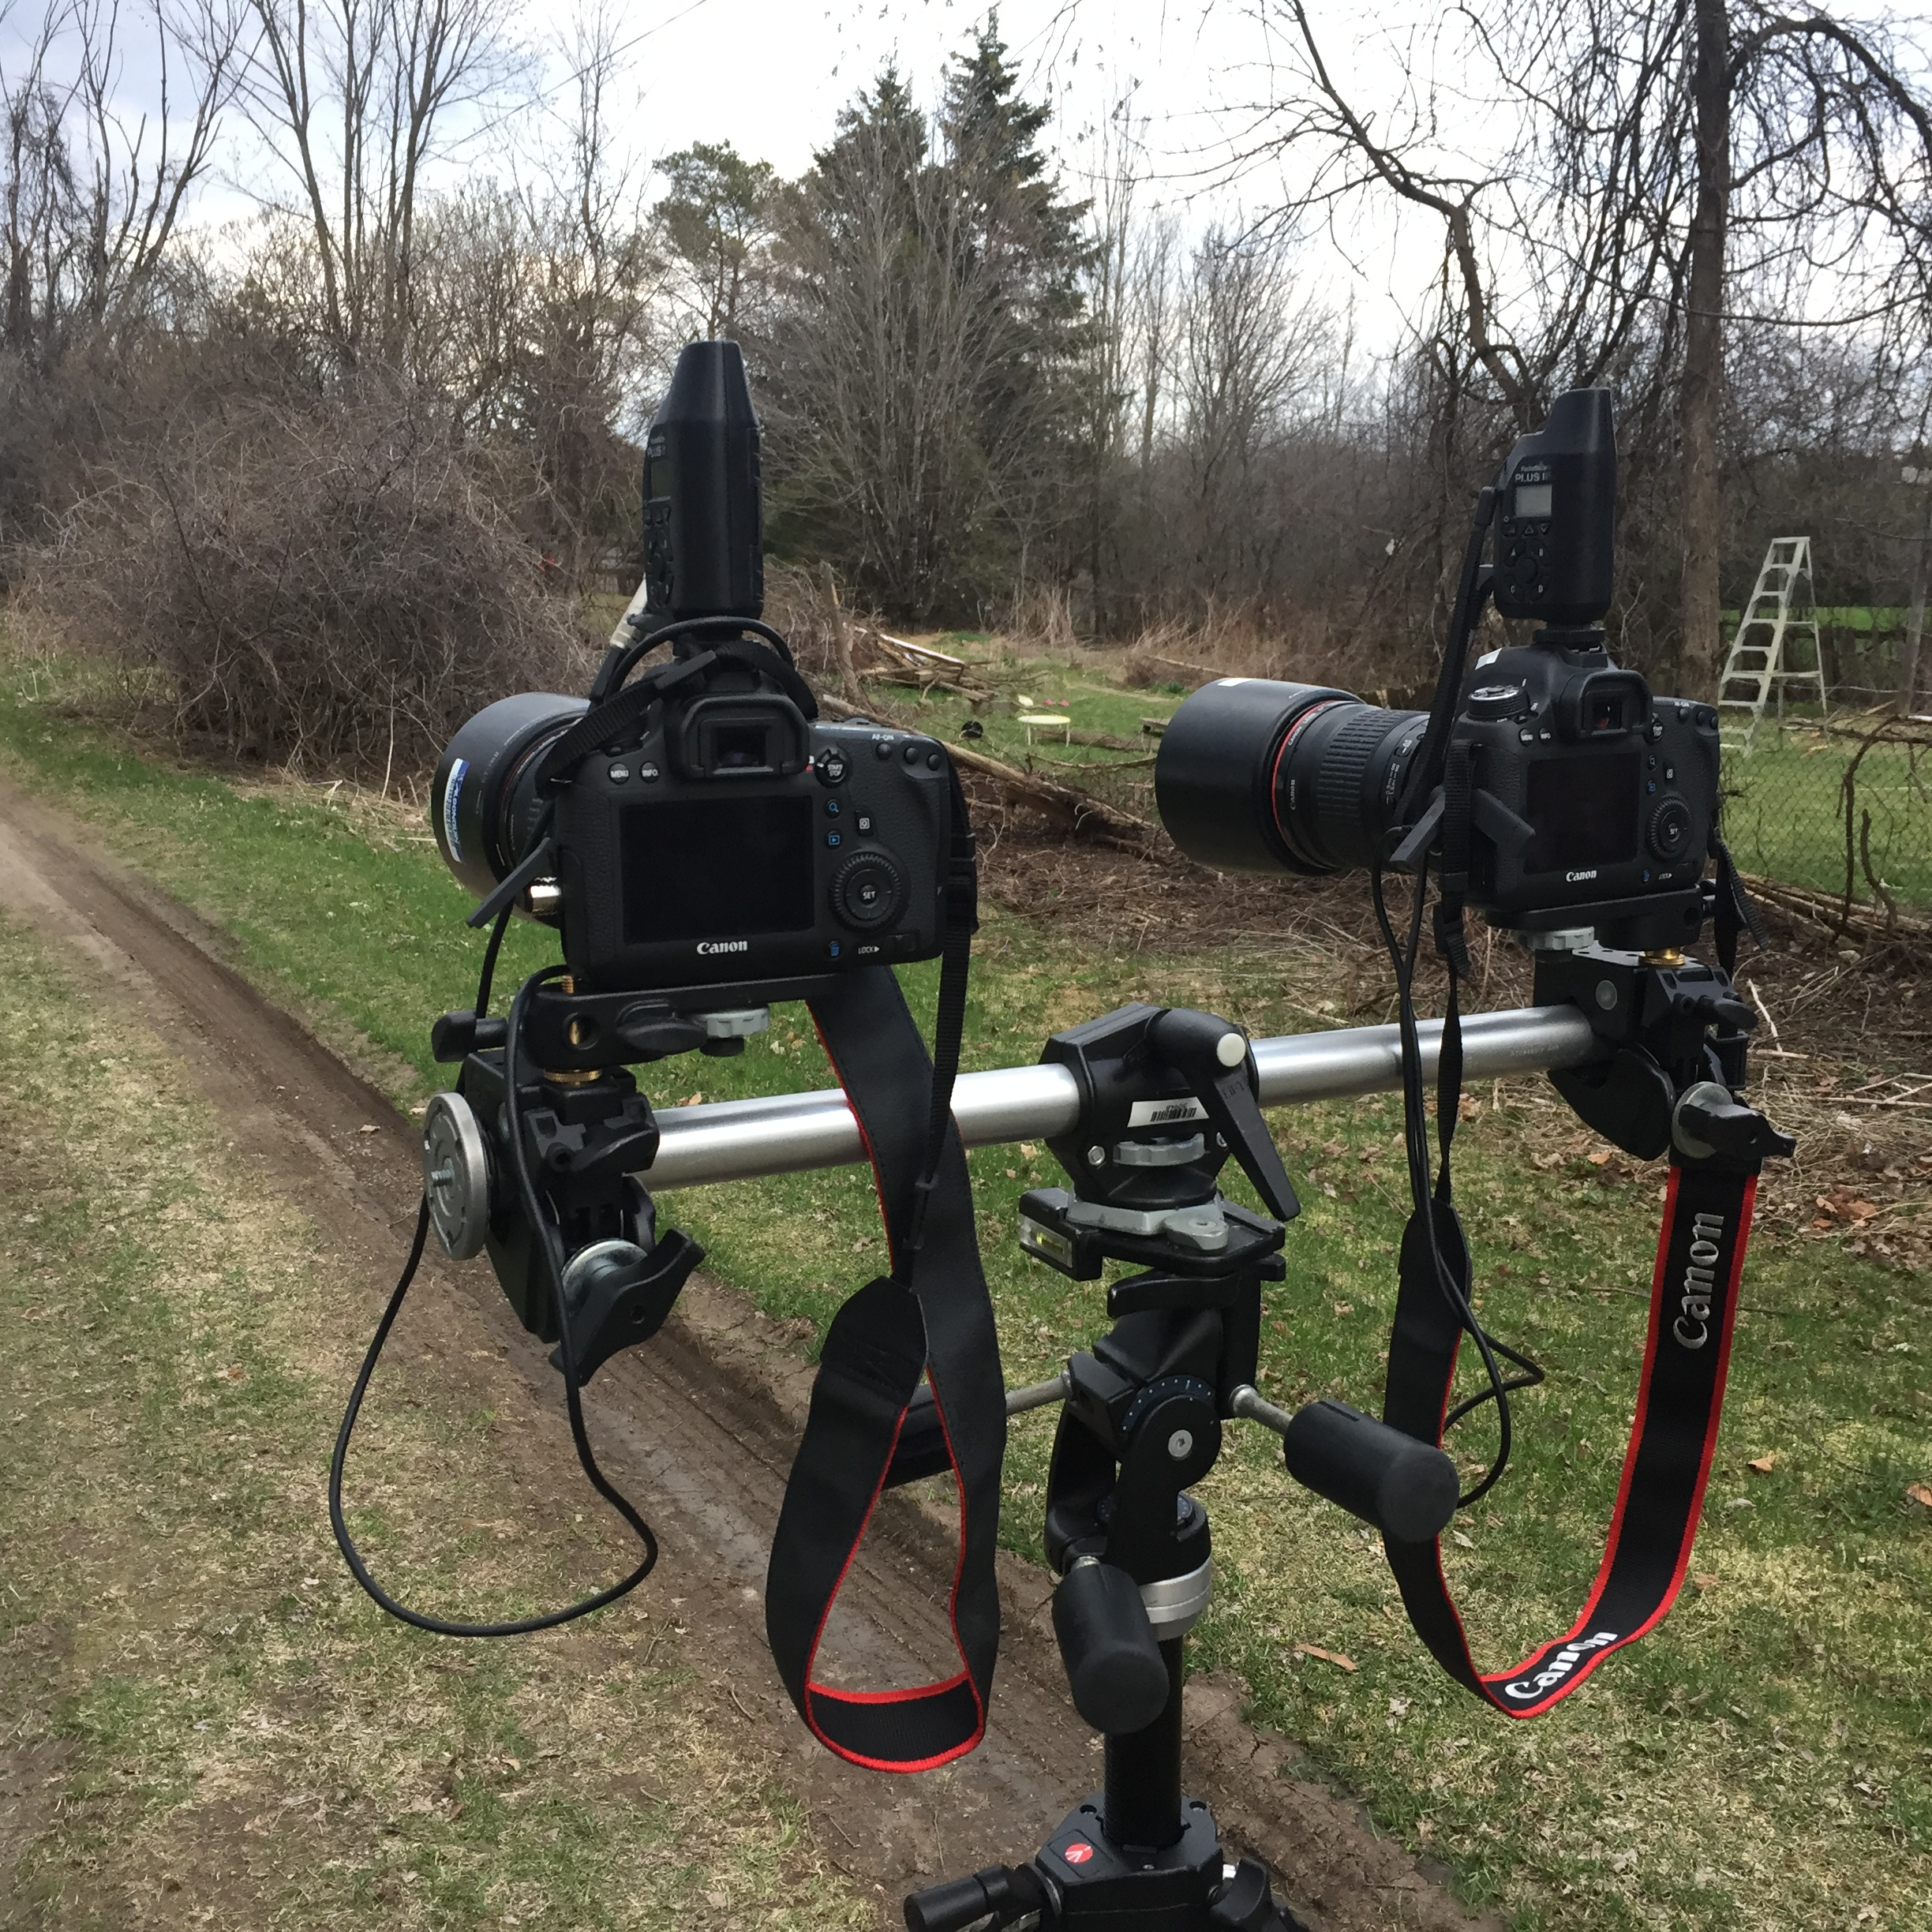 Fig. 1. Stereoscopic Rig #01 (Source: Machinski, 2018).